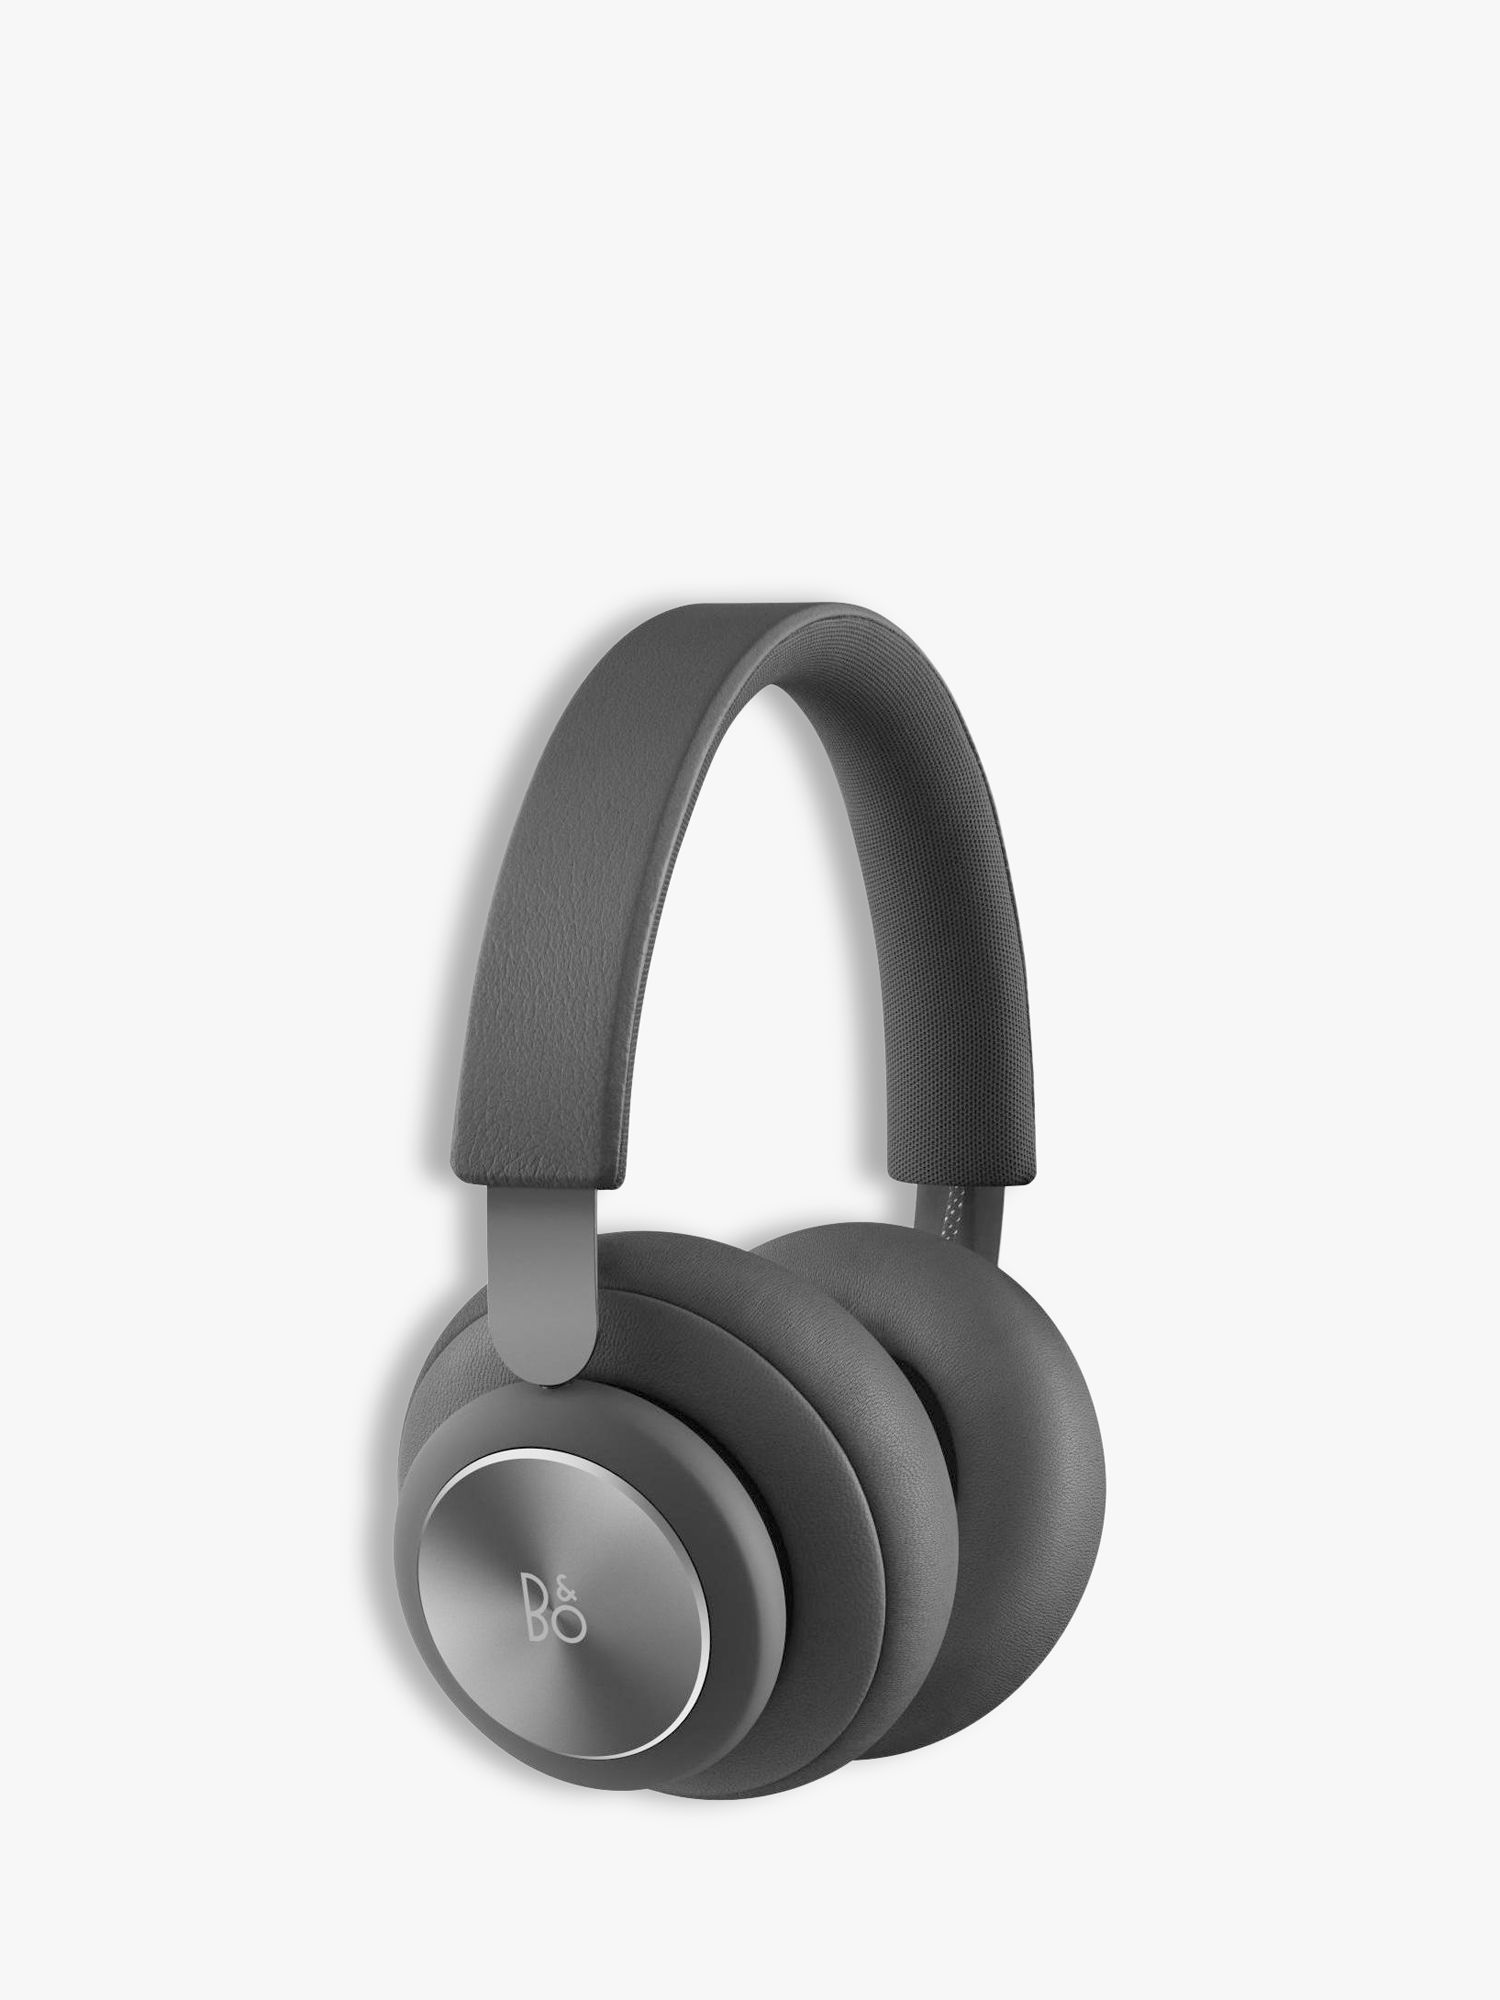 Bang & Olufsen Bang & Olufsen Beoplay H4 (2nd Generation) Wireless Bluetooth Over-Ear Headphones with Voice Assistant Button